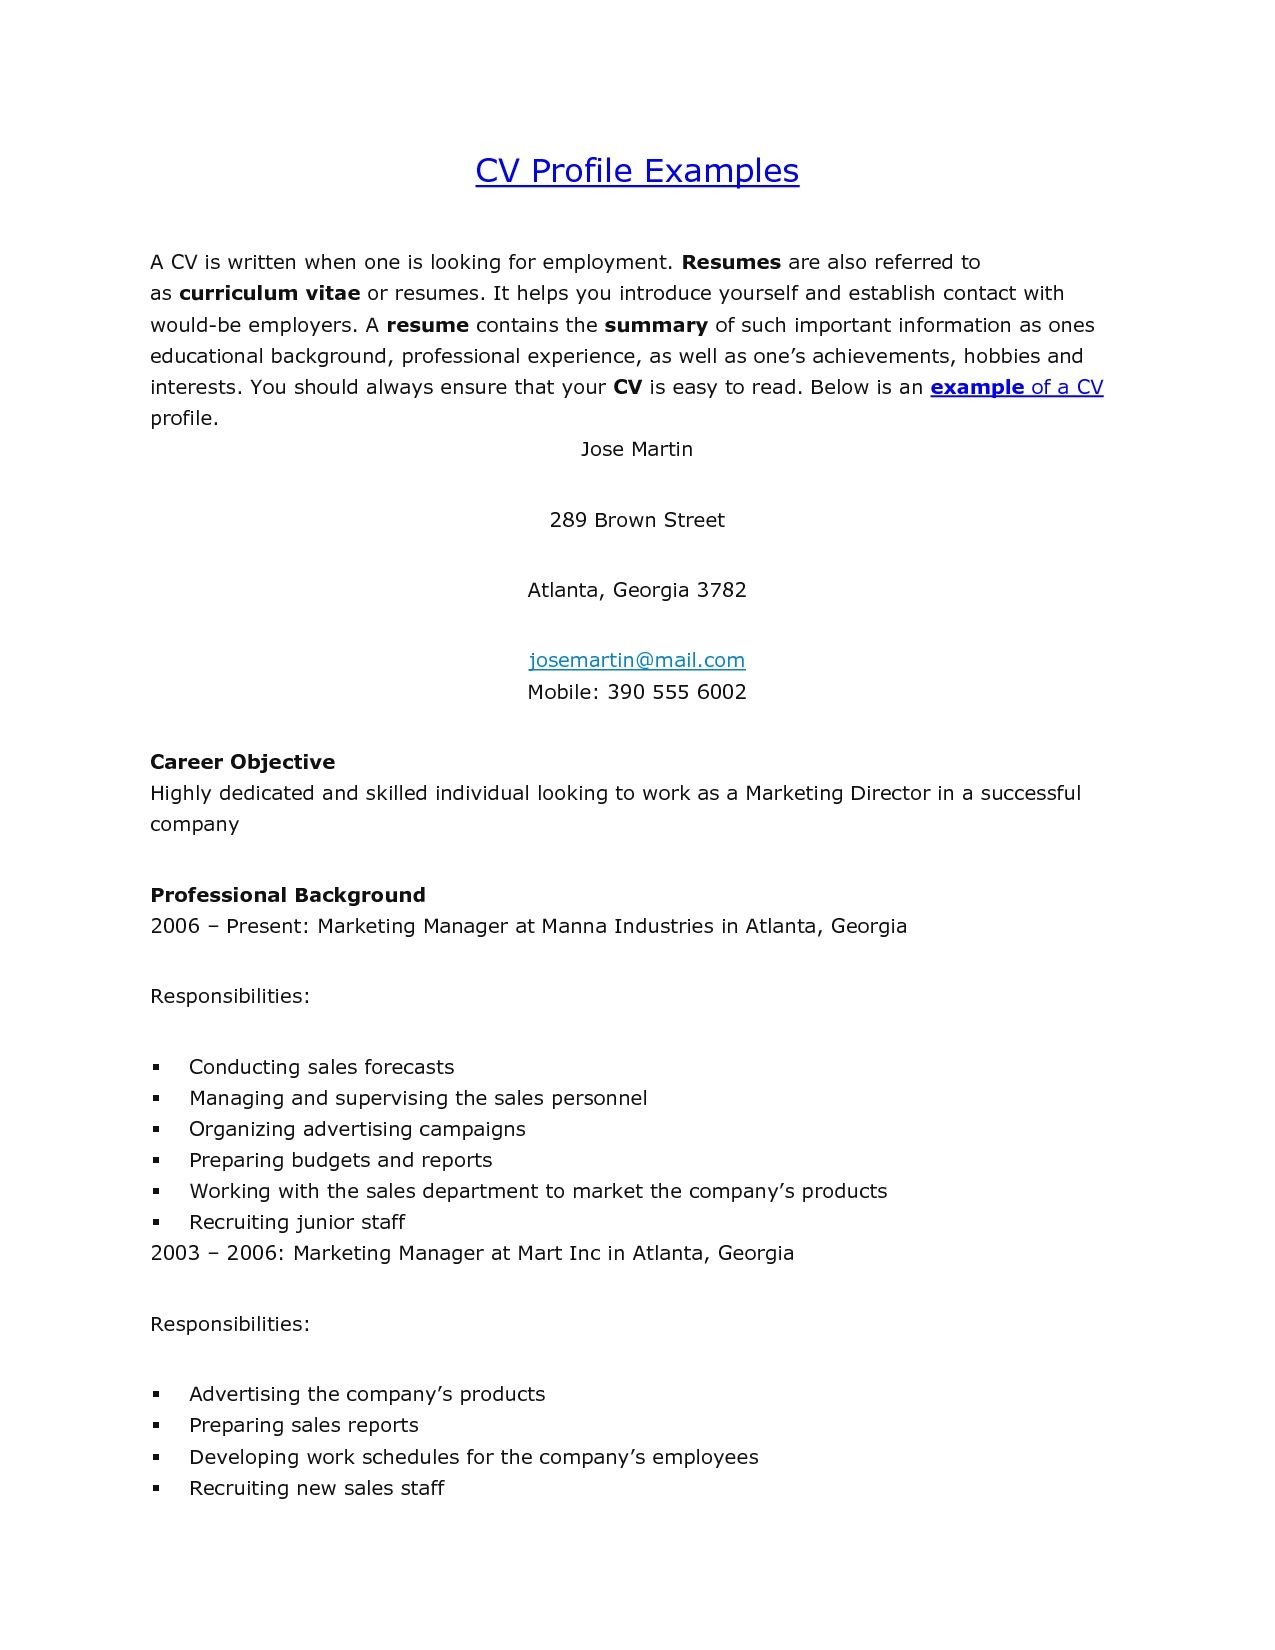 Resume Profile Examples Resume Professional Profile Examples Sample Experience Chartered